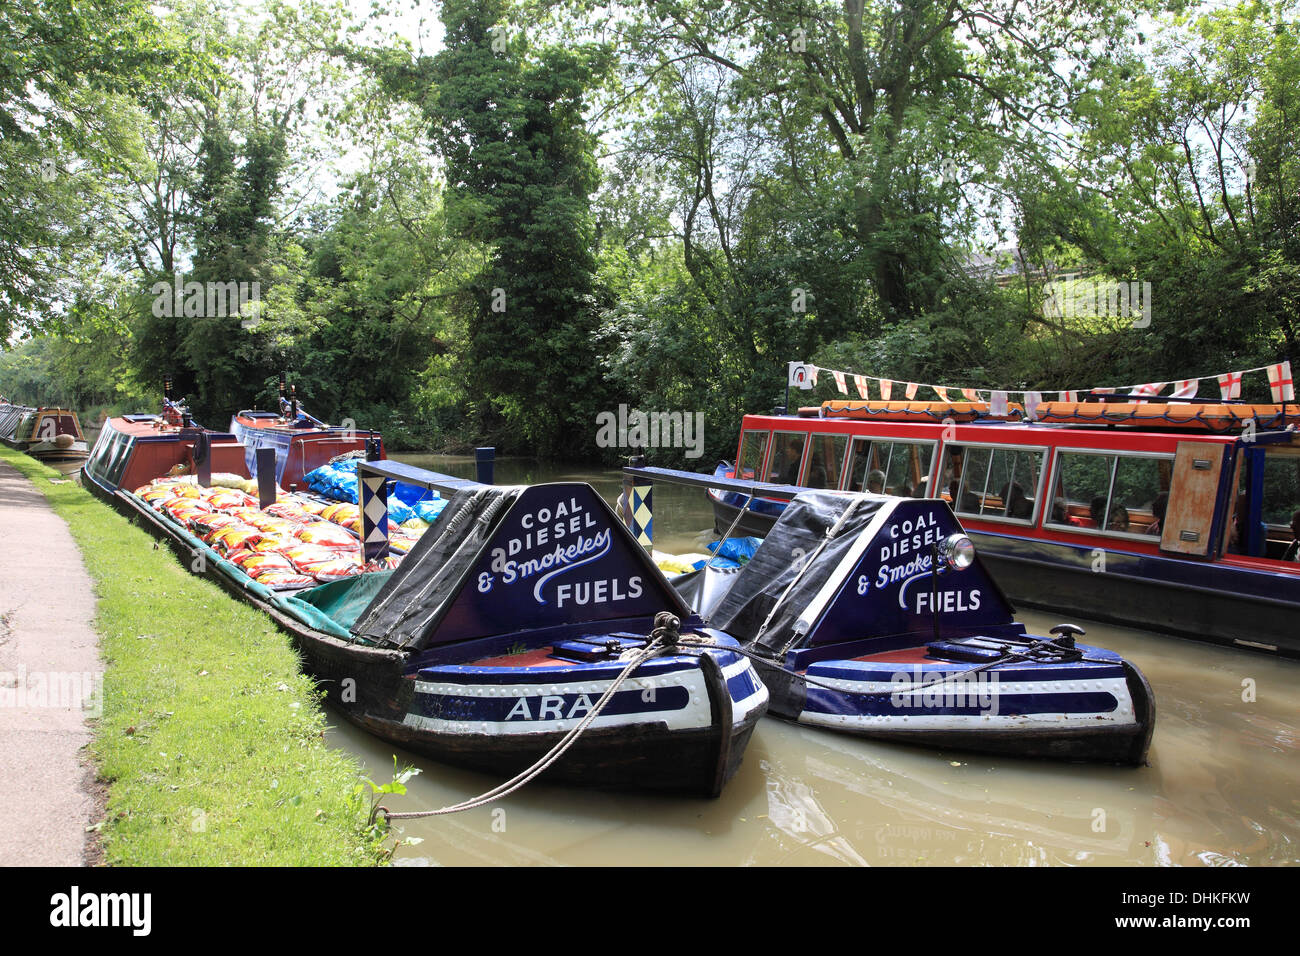 Two historic coal carrying narrowboats moored on the Grand Union Canal at Stoke Bruerne - Stock Image